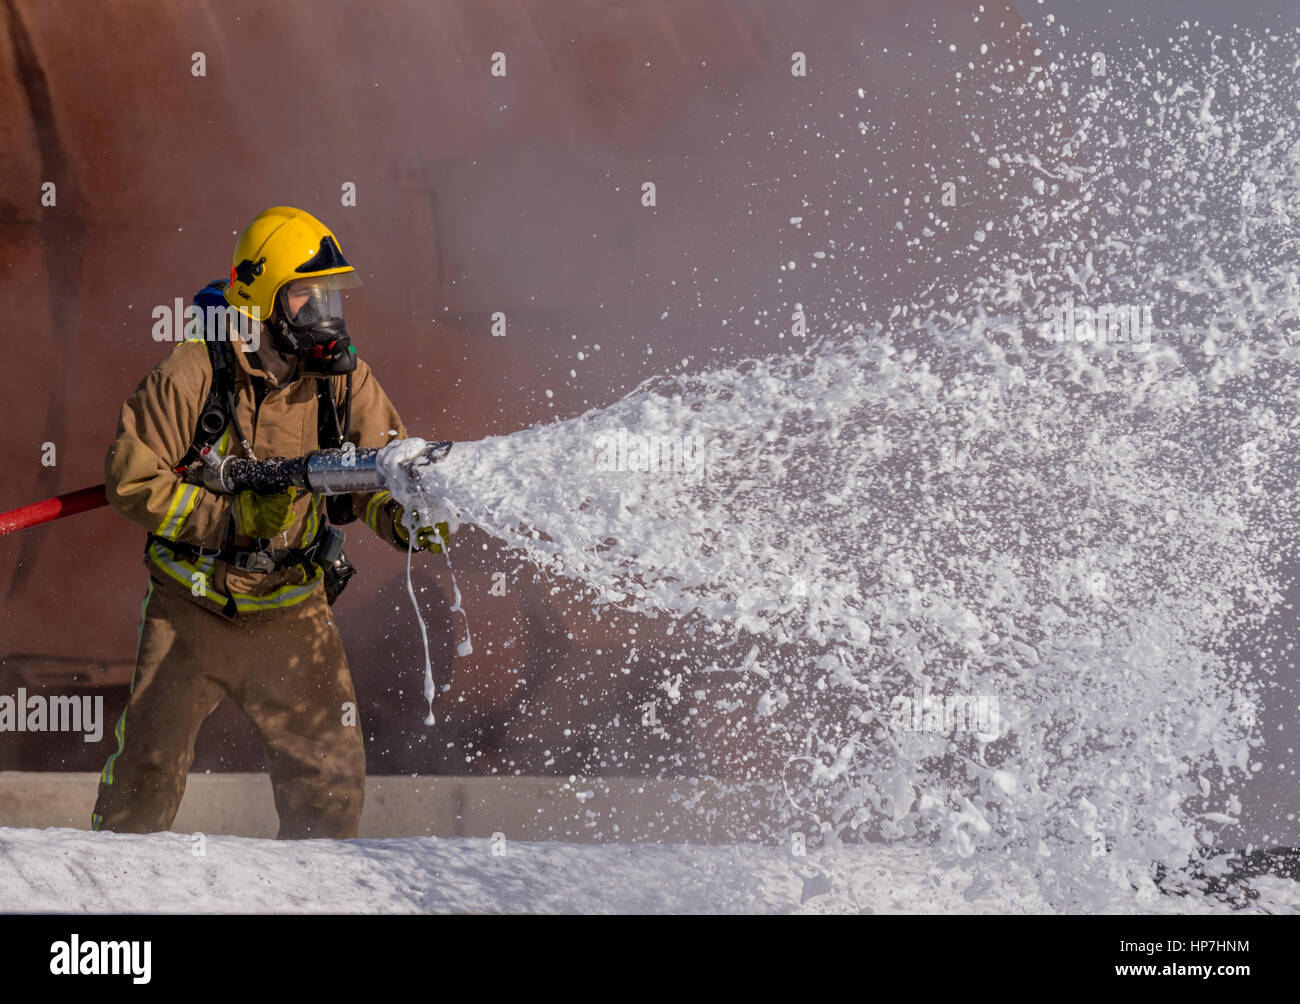 Royal Navy Crash/Fire Exercise Predannack Airfield - Stock Image